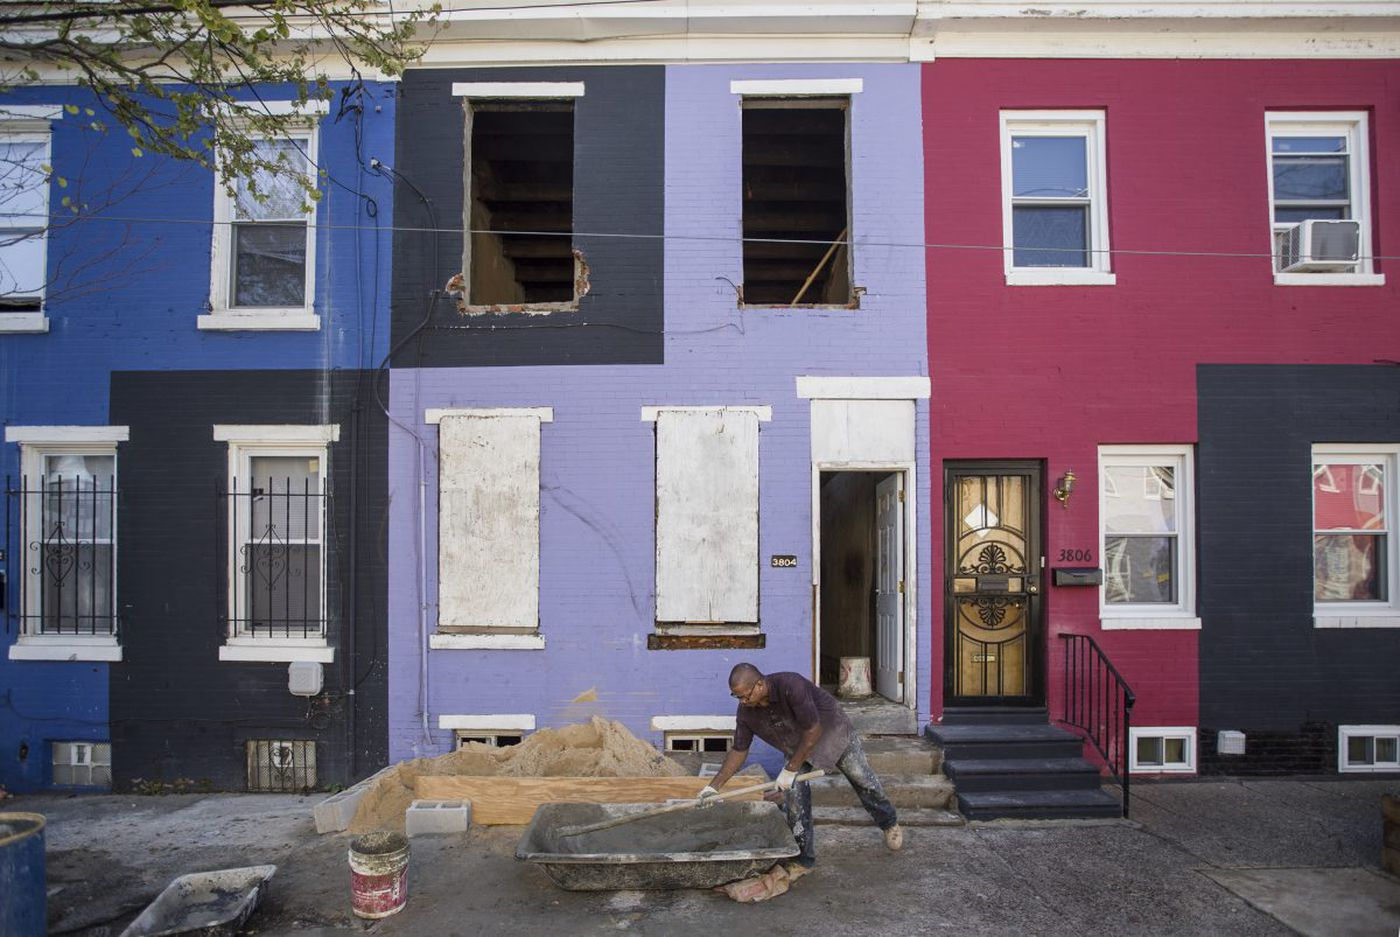 An 'uncomfortable' life: Philly still America's poorest big city